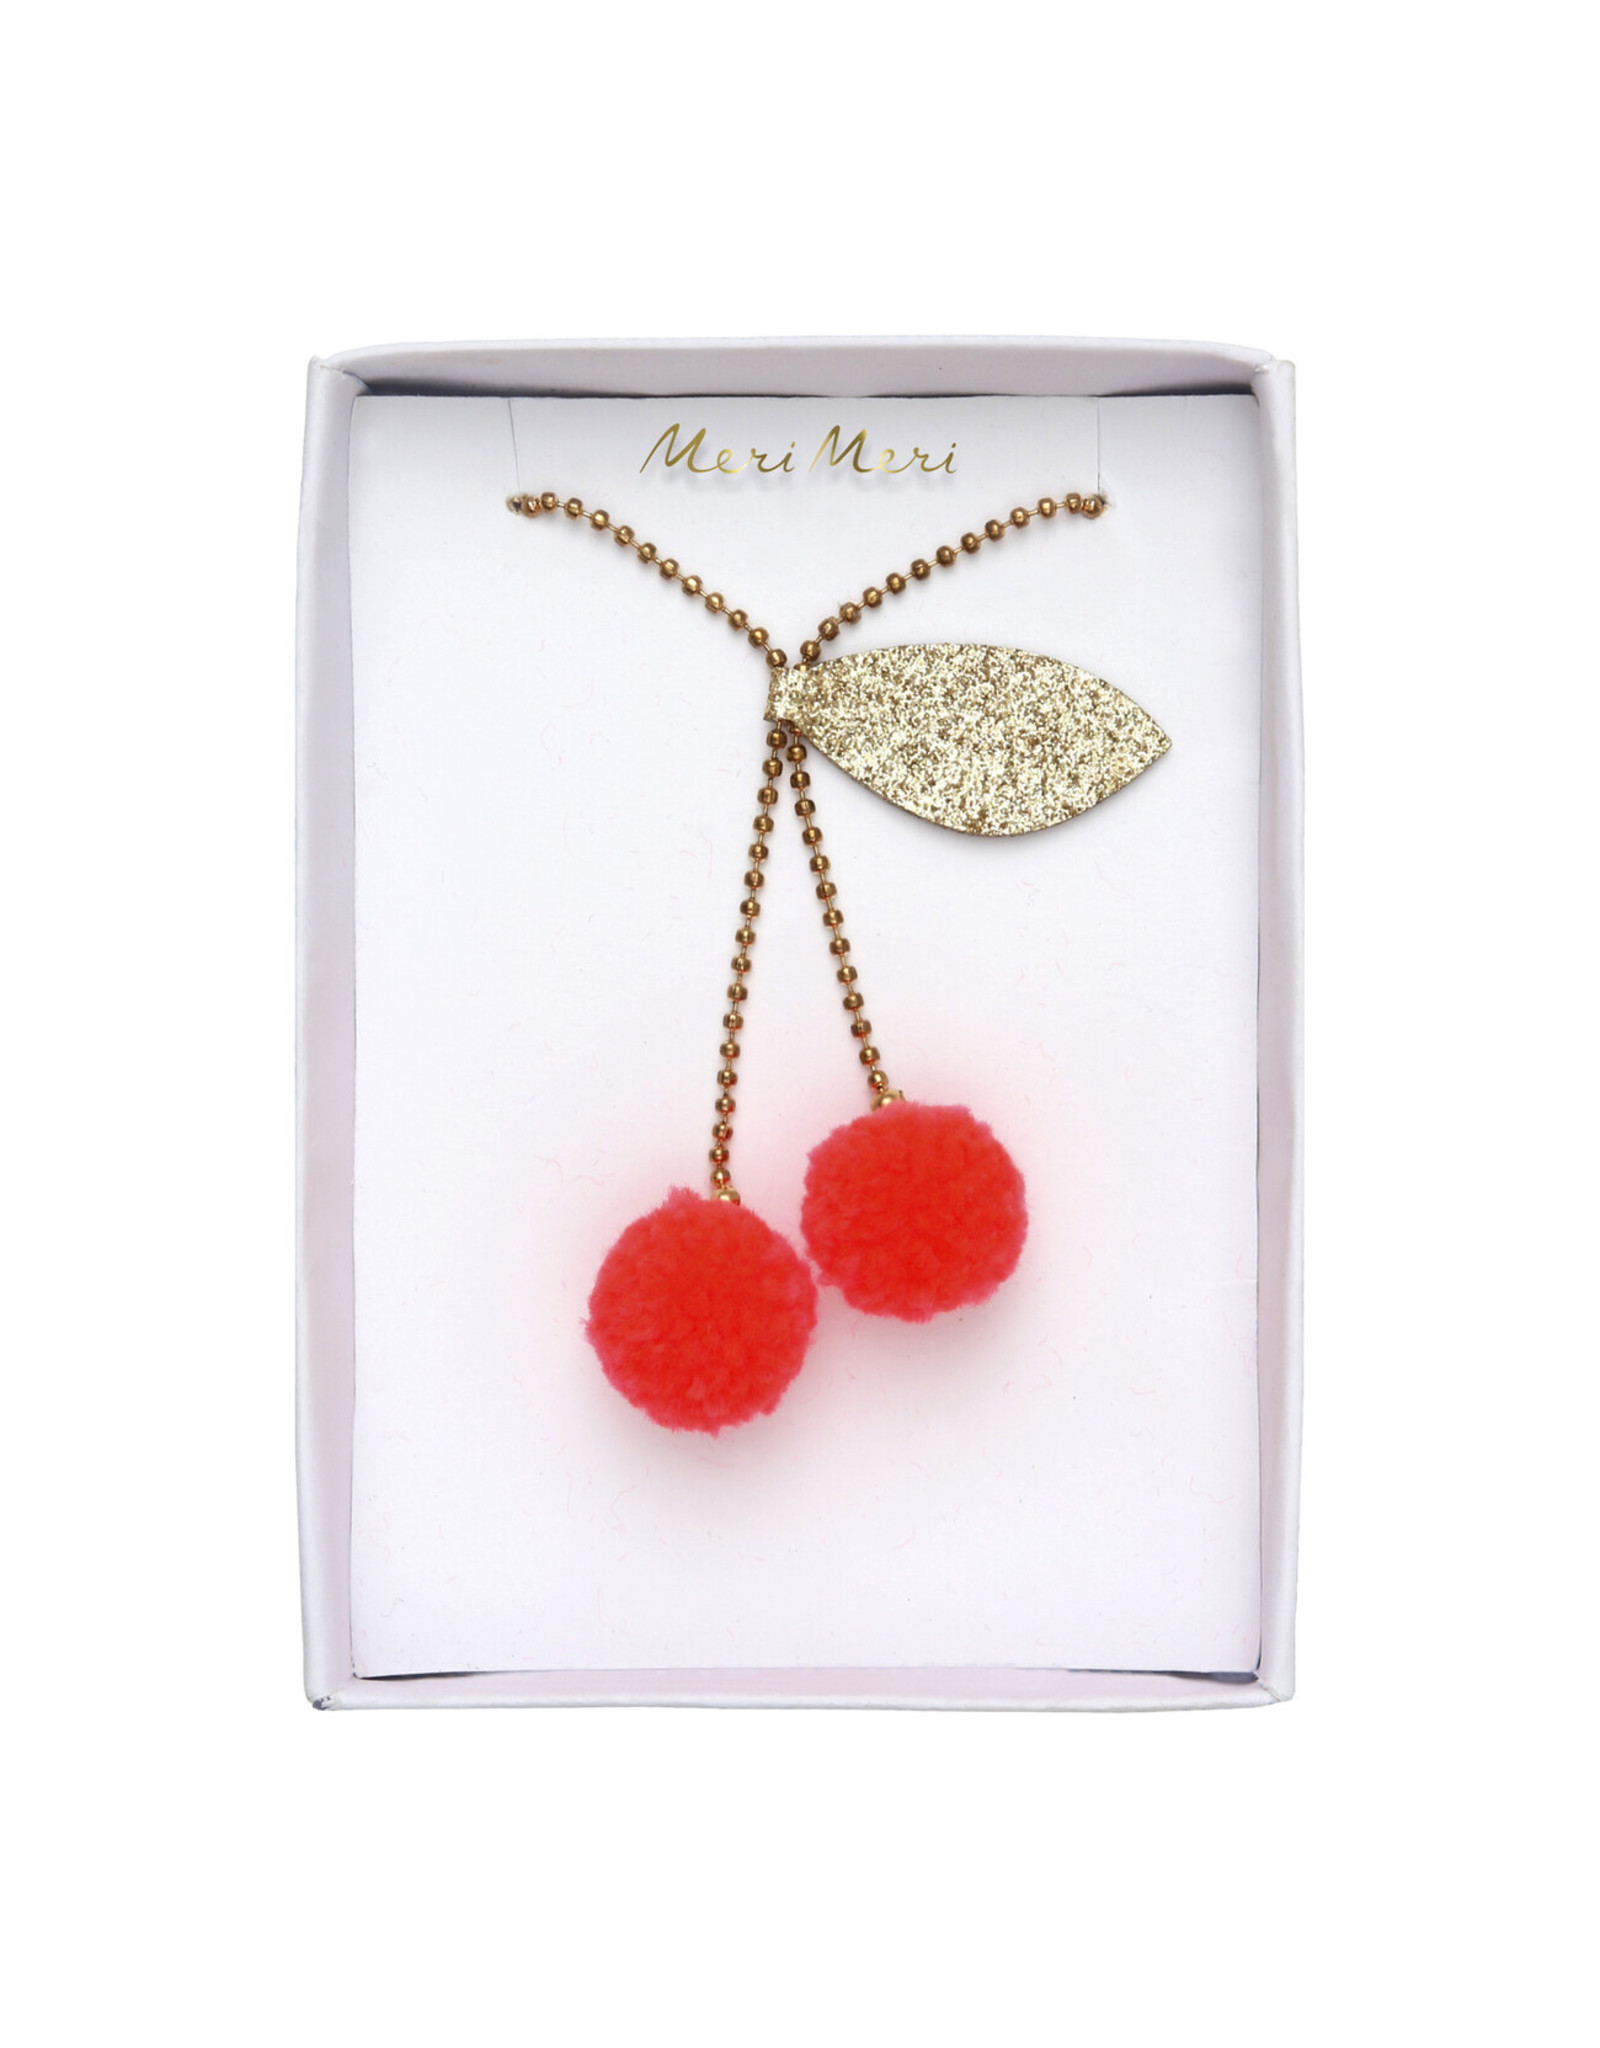 Meri Meri CHERRY POMPOM NECKLACE